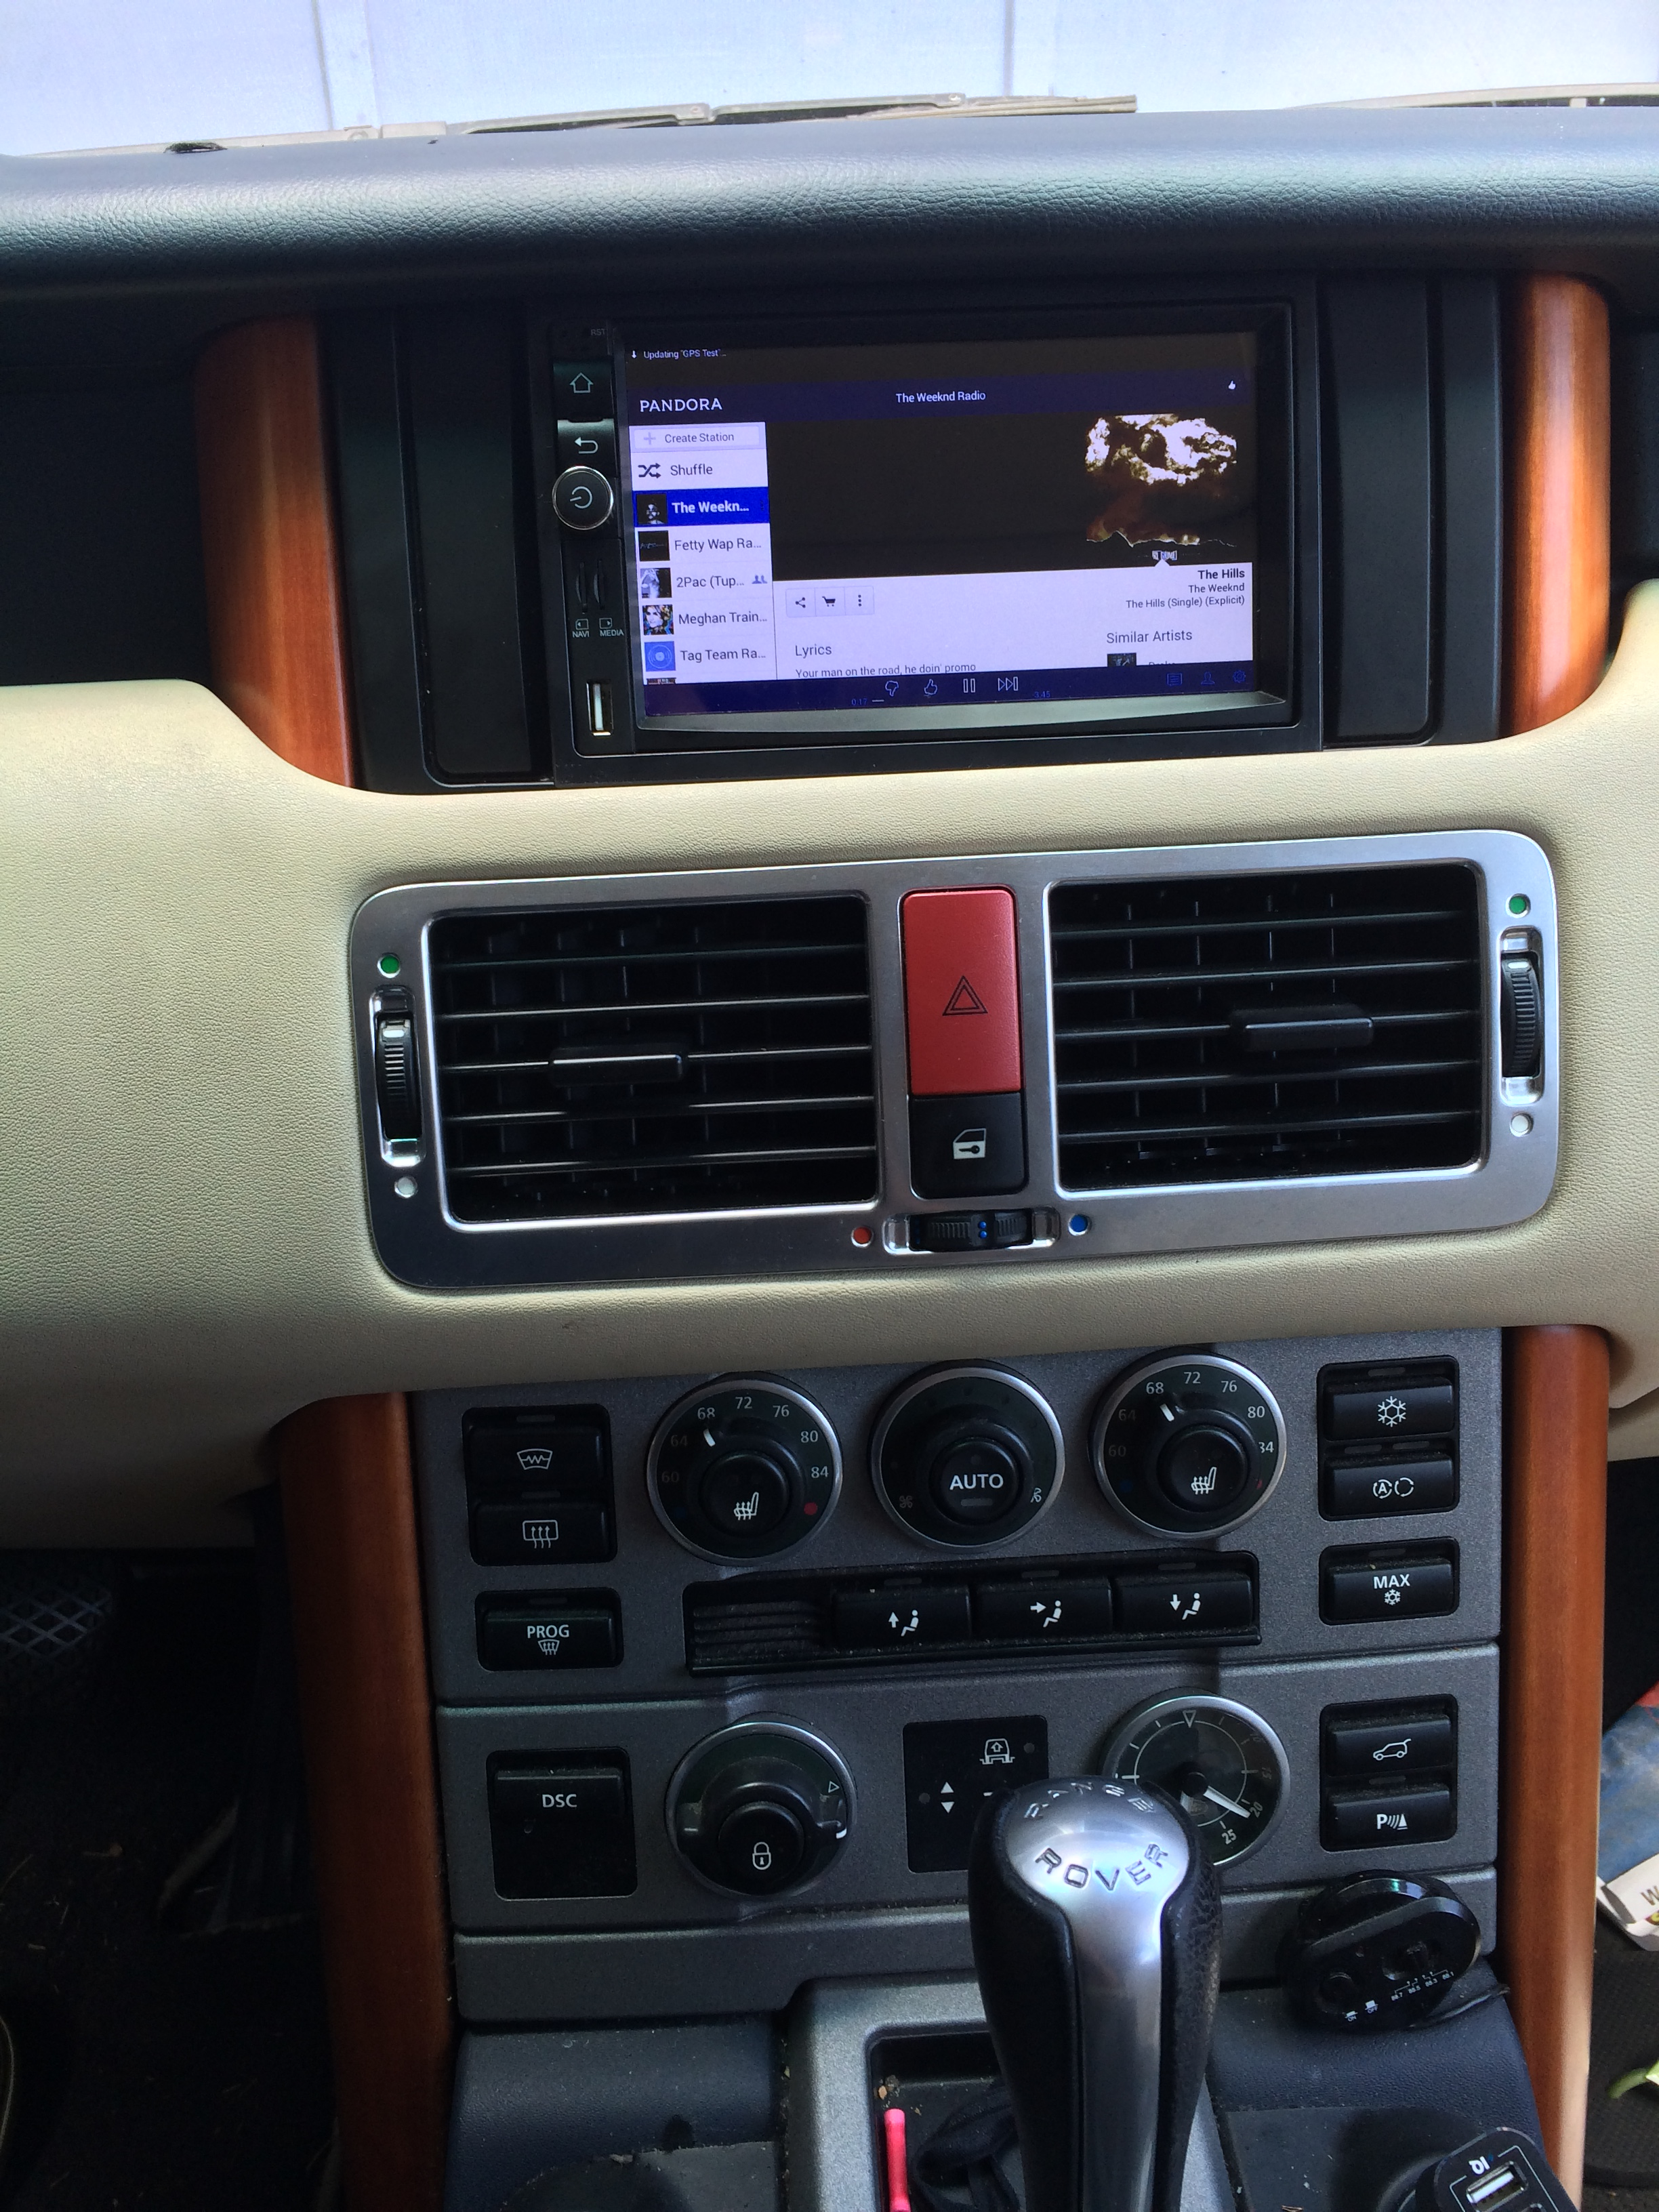 Upgrading Range Rover Stereo and Navigation: Part 1 Off Road